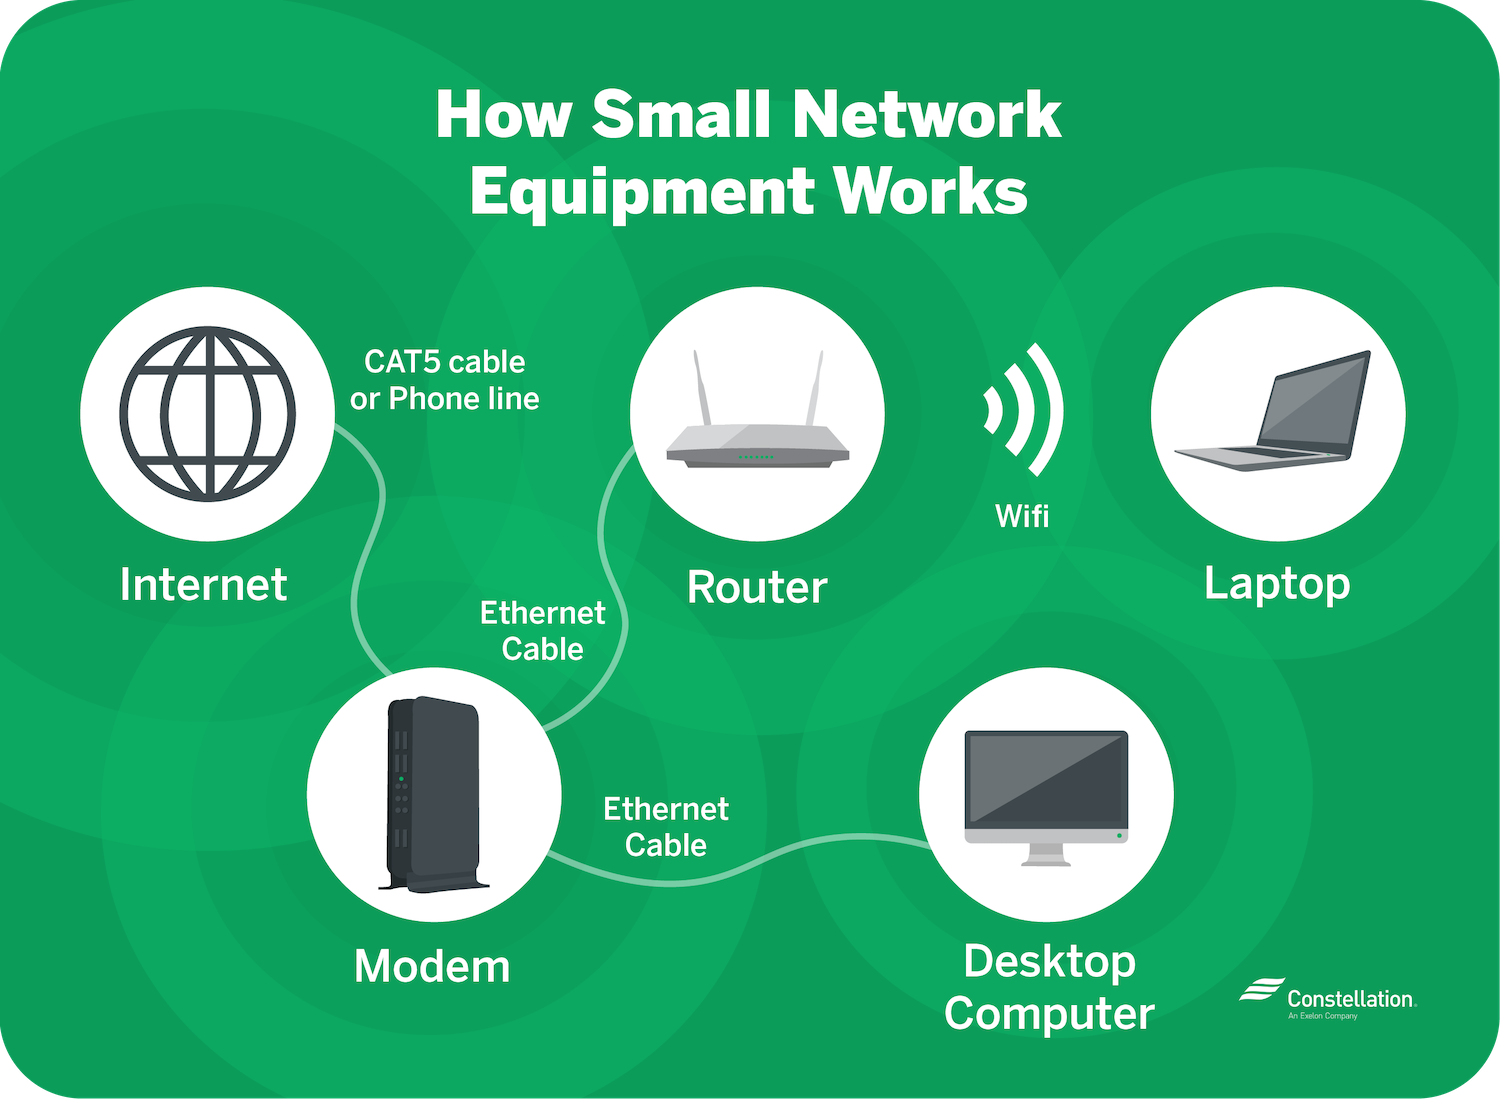 Small network equipment works by sending Internet through your modem to your router, and then uses wifi to transfer to your devices